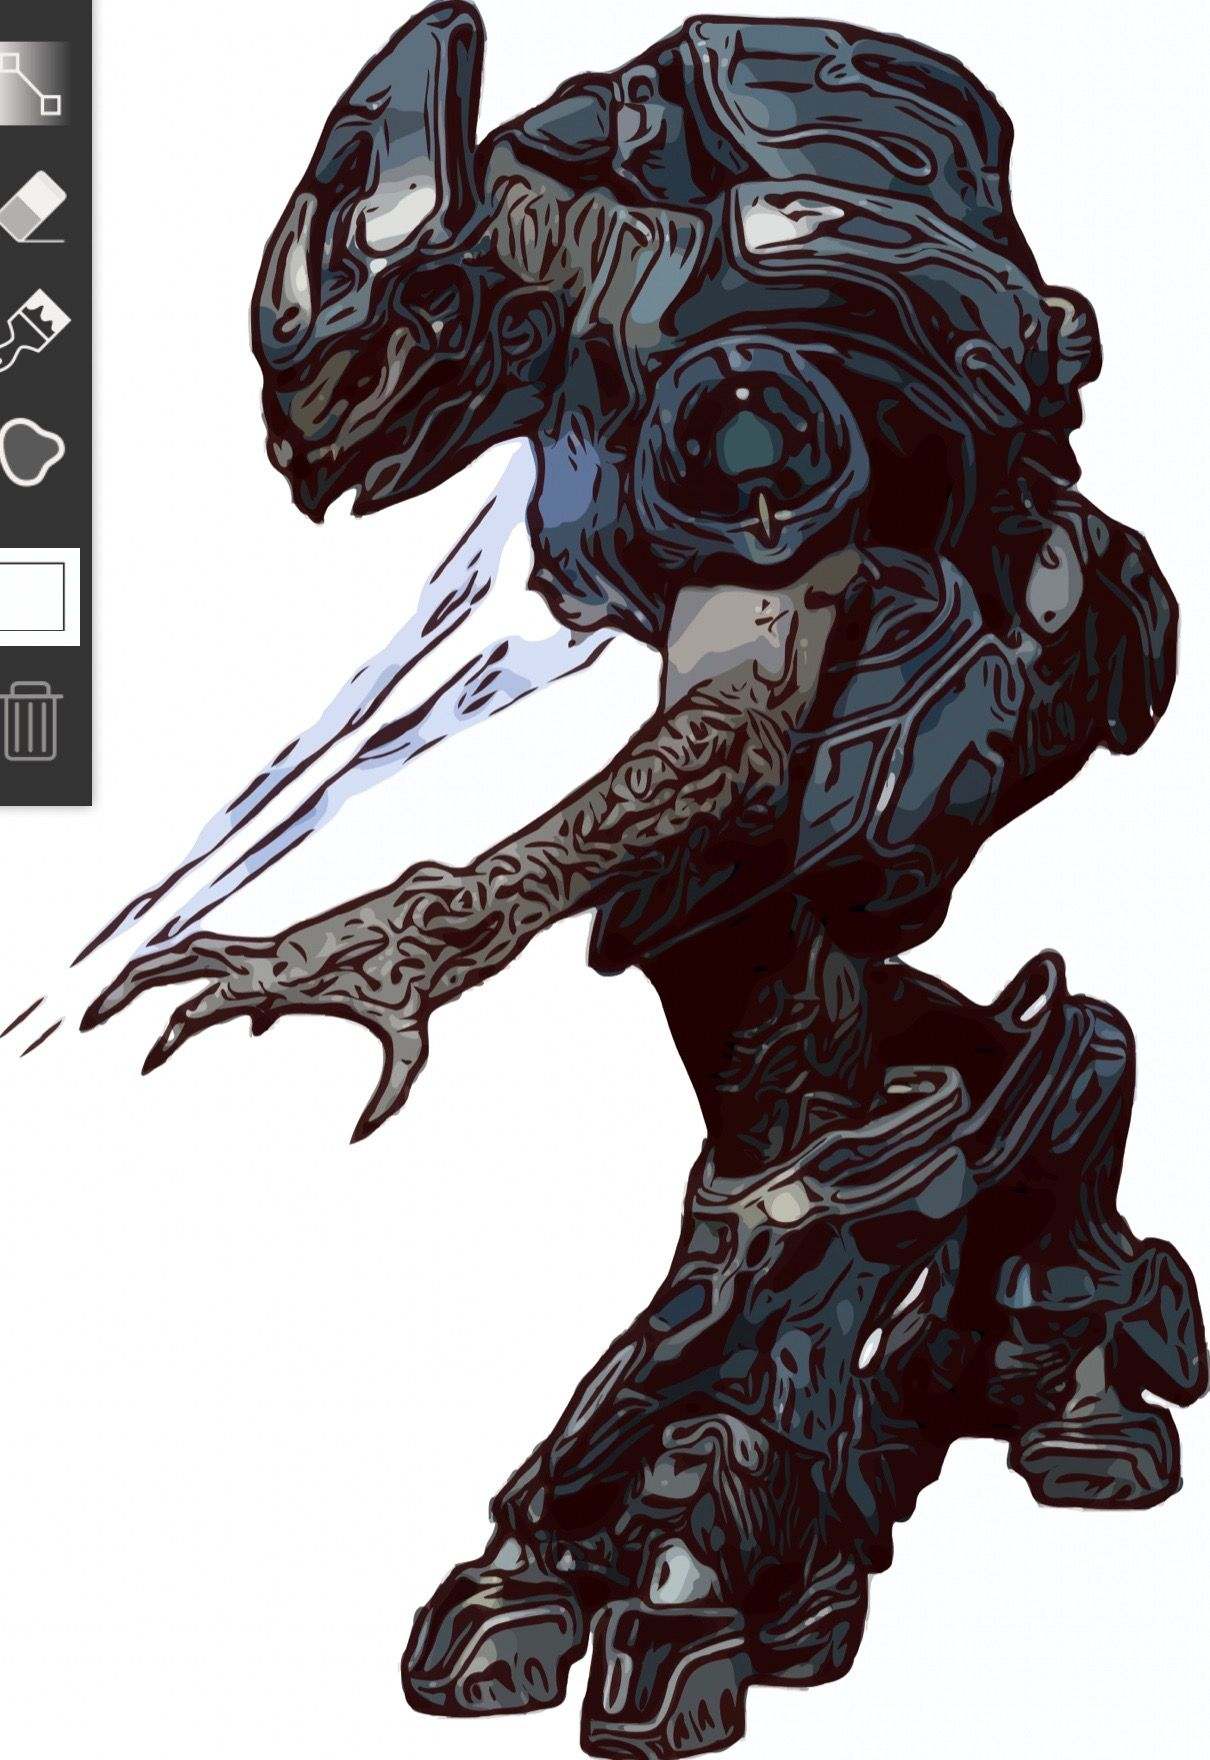 Pin by Rowland Miller on Halo Halo, Alien, Humanoid sketch